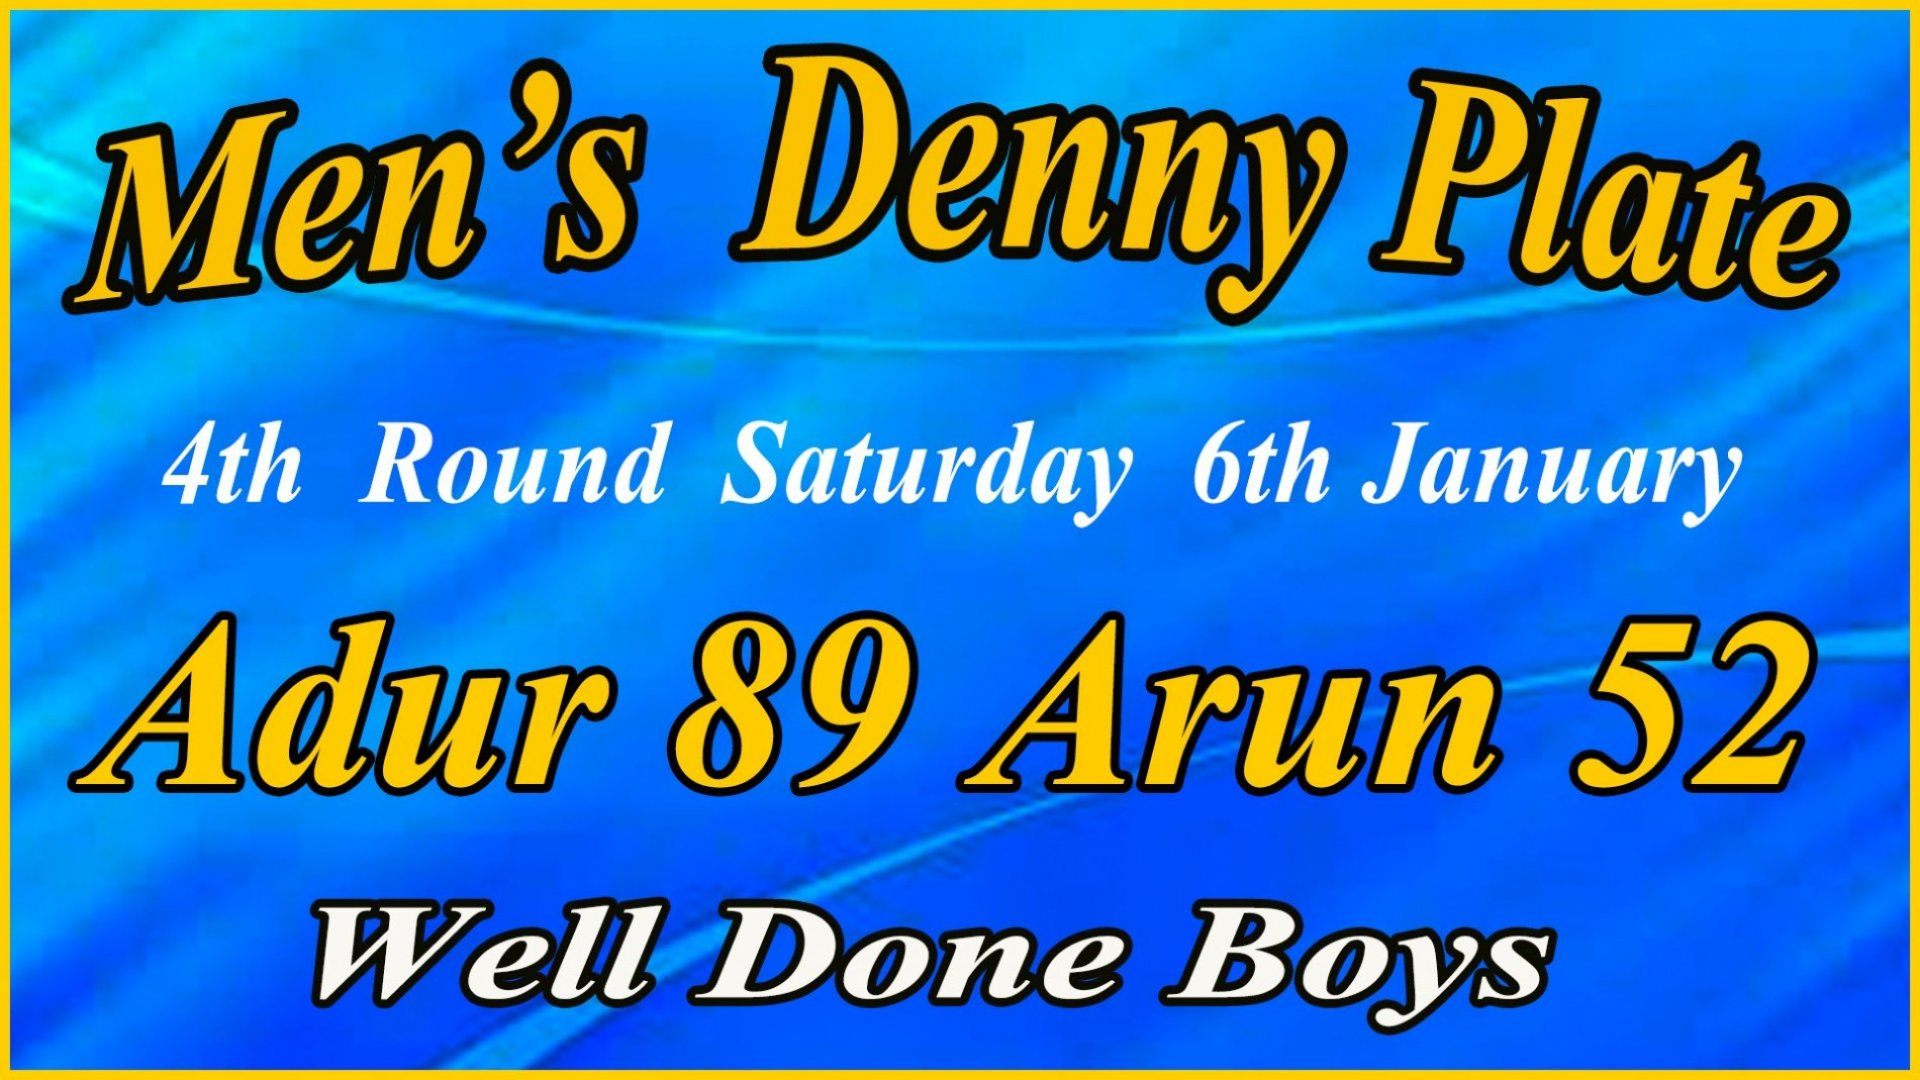 Men's Denny Plate - 4th Round Result - 6th Jan 2018